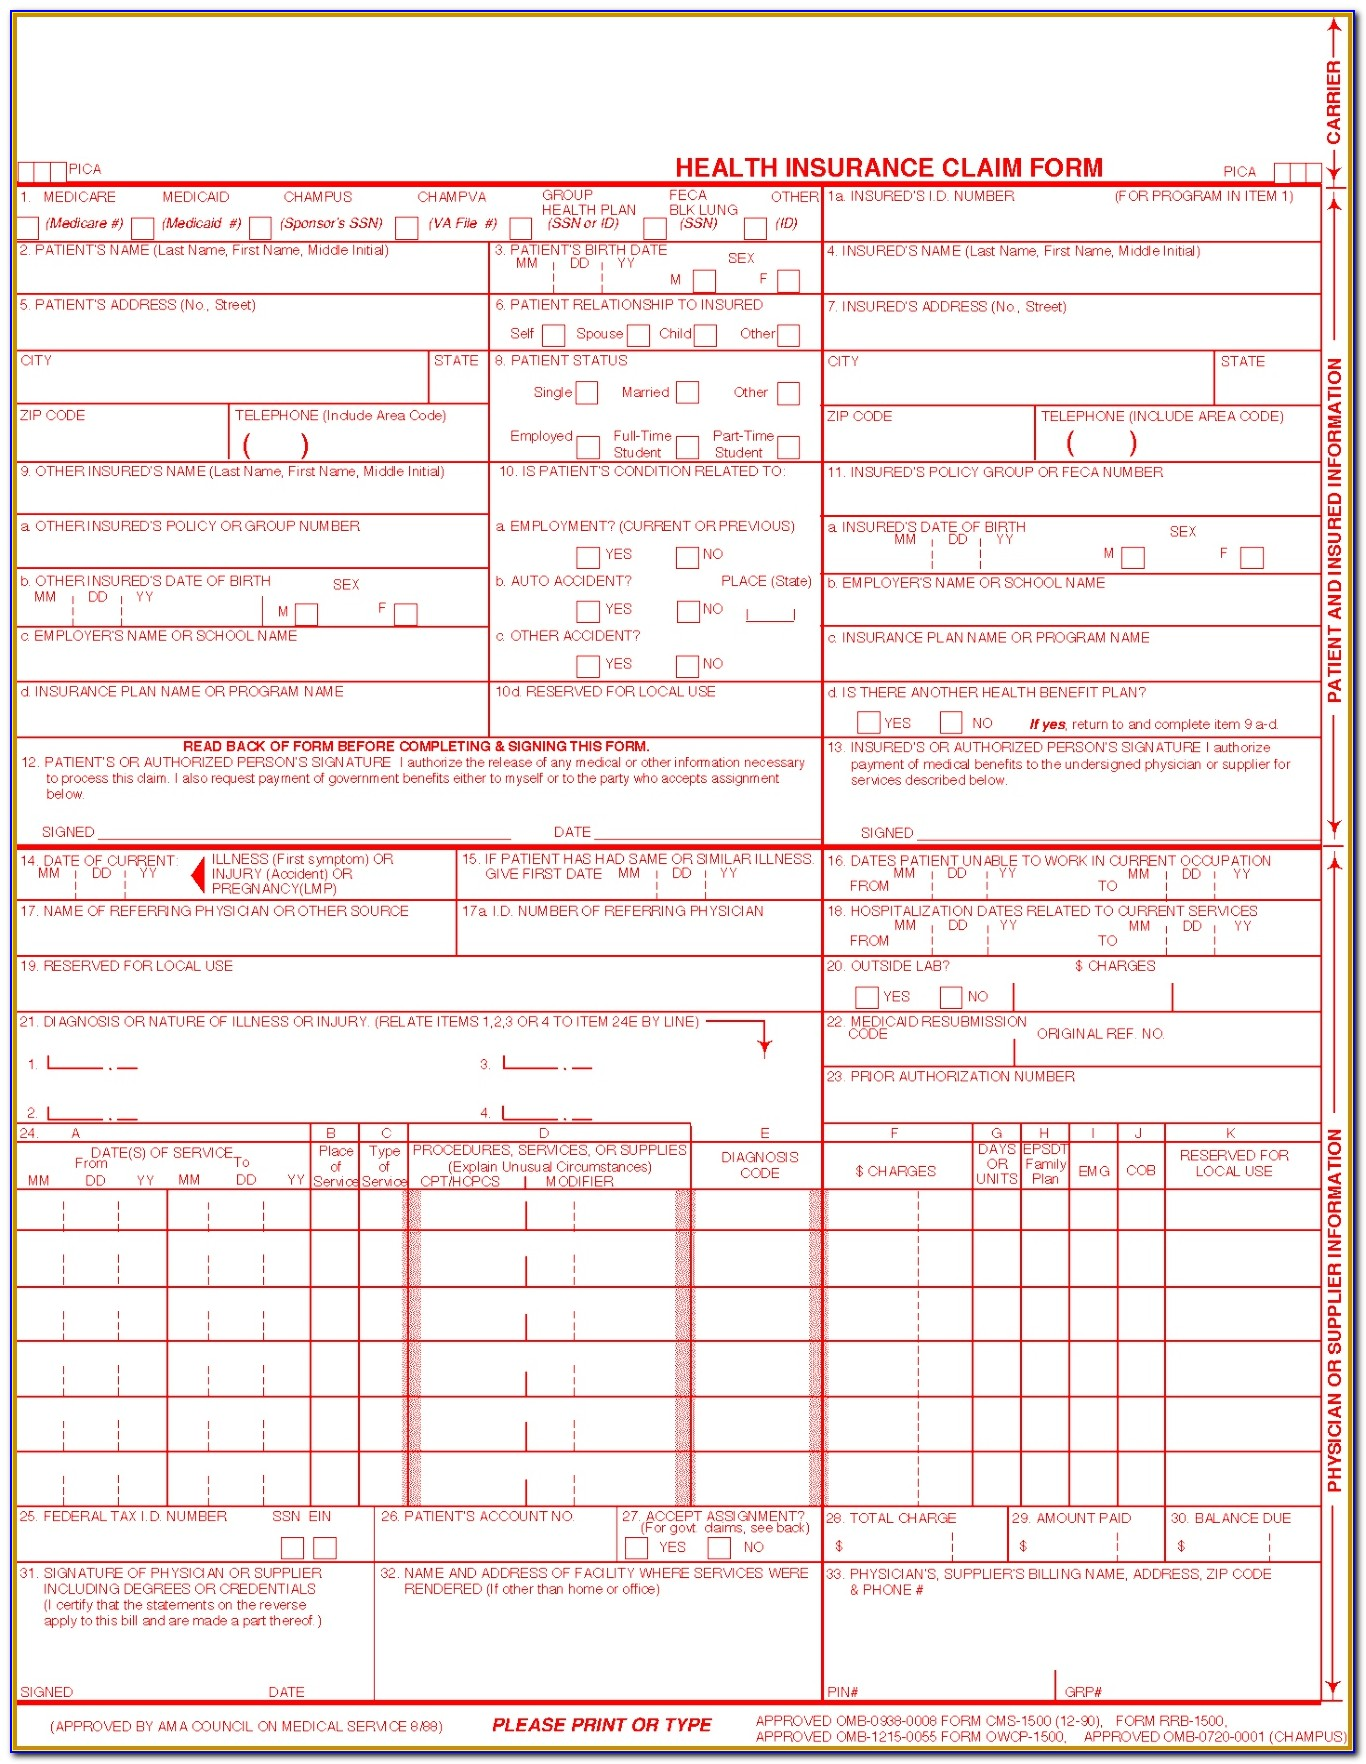 Universal Claim Form Template 91817 Hcfa 1500 ? Medical Billing Wiki ? Claims Med